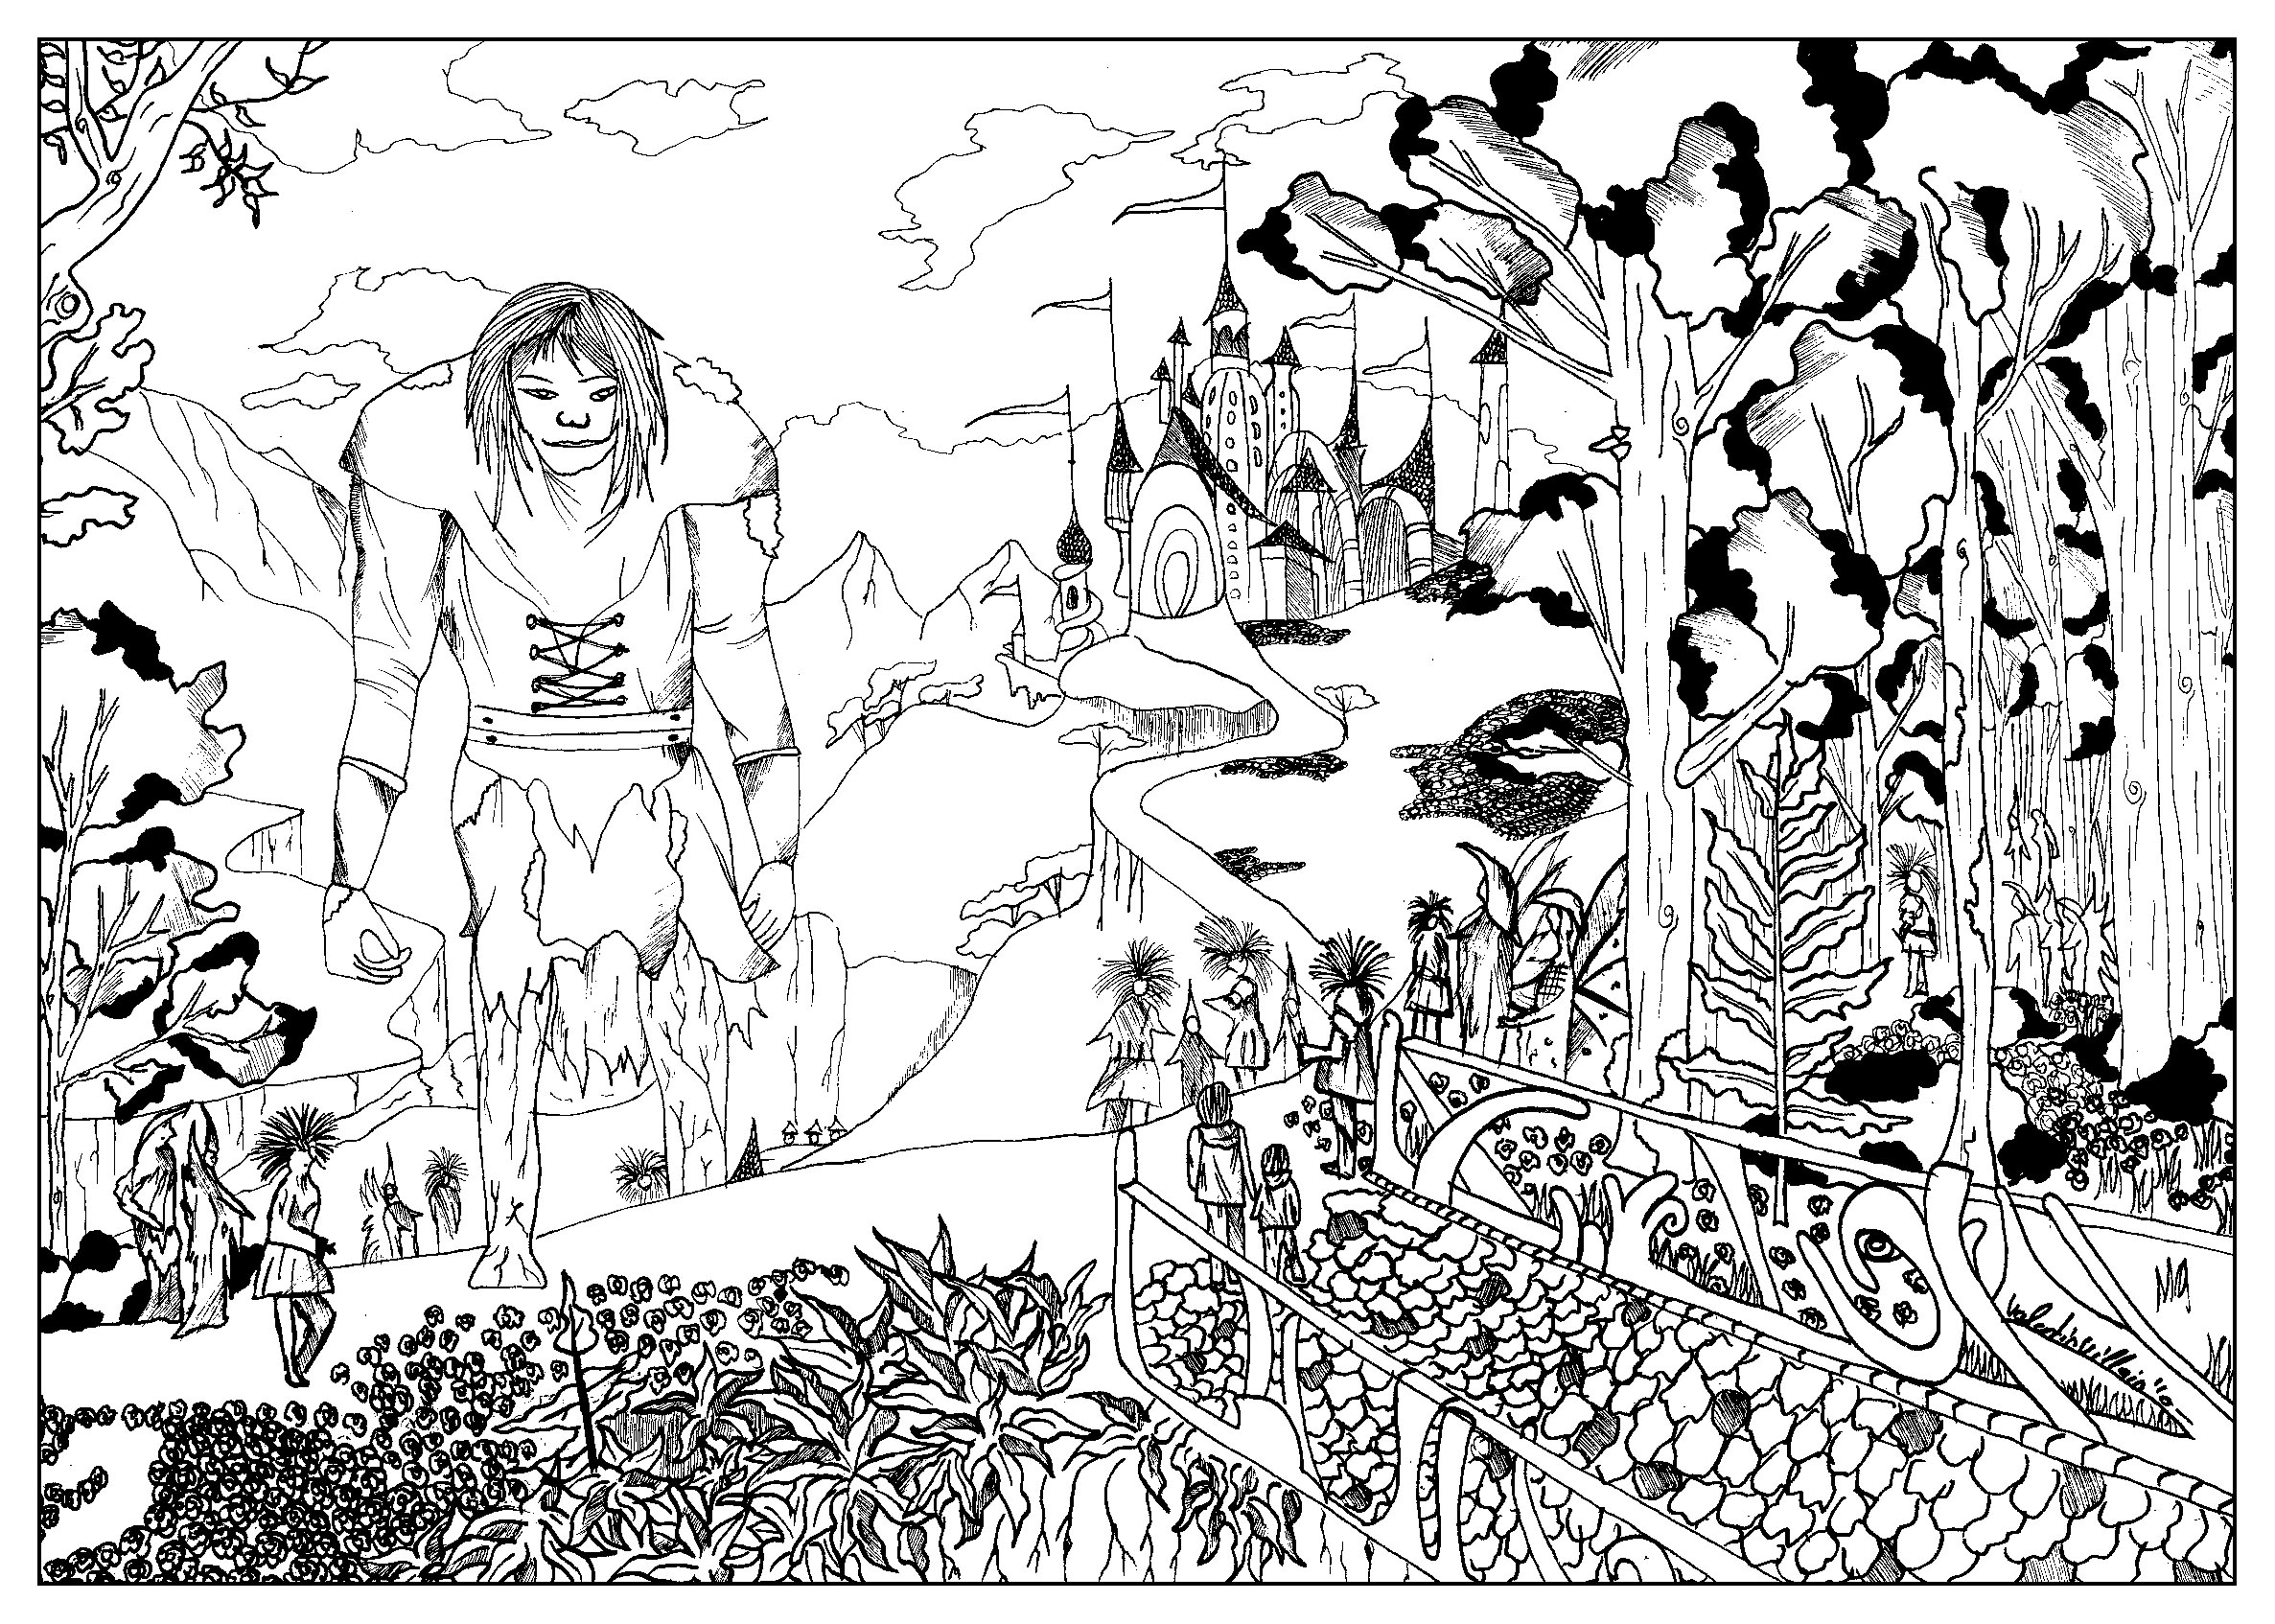 coloring page inspired by the movie bridge to terabithia with a giant a castle and a mysterious forest